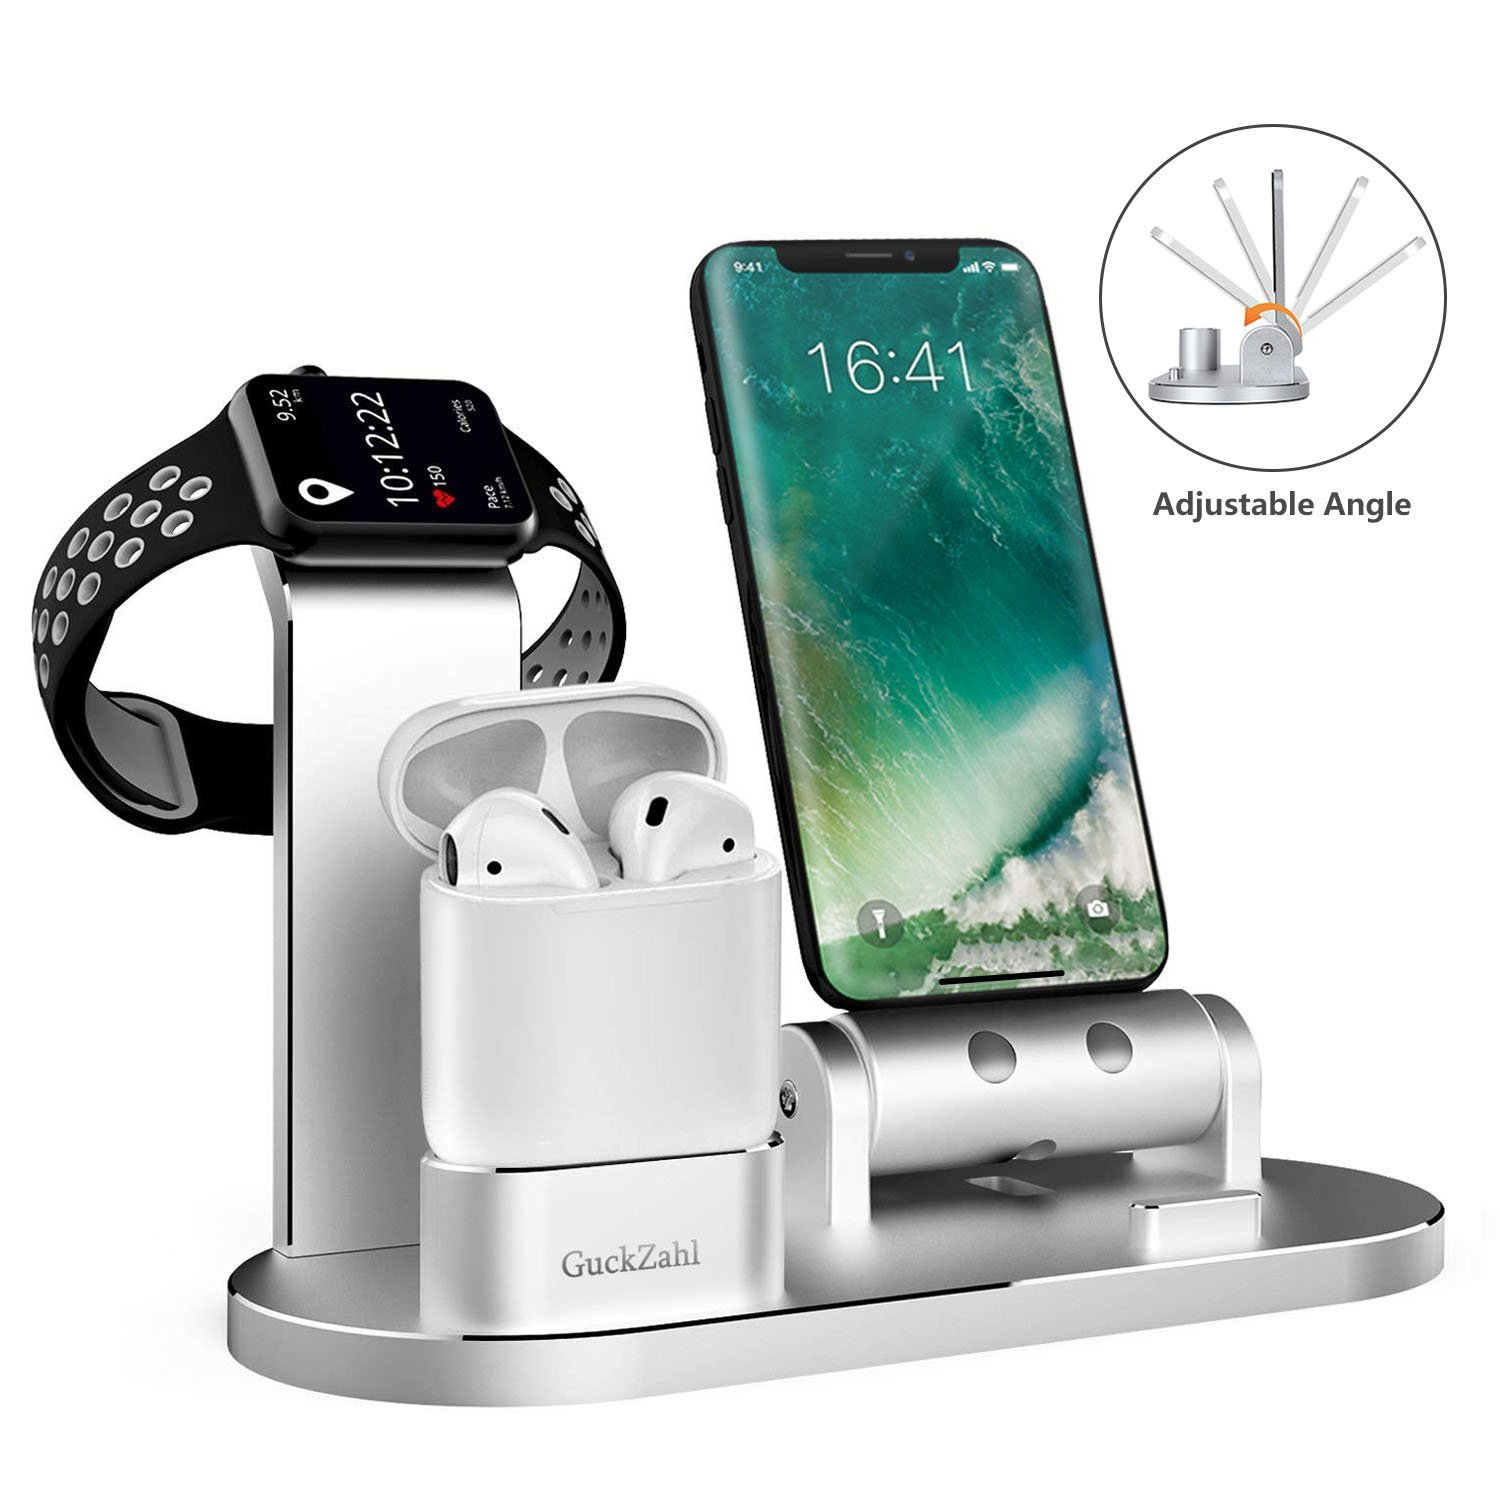 GuckZahl Apple Watch Changing Stand Aluminum 4 in 1 iWatch Charging Docks Phone Charging Station for Apple Watch Series 3/ 2/ 1/ AirPods/ iPhone X/ 8/ 8 Plus/ 7/ 7 Plus /6s/iPad